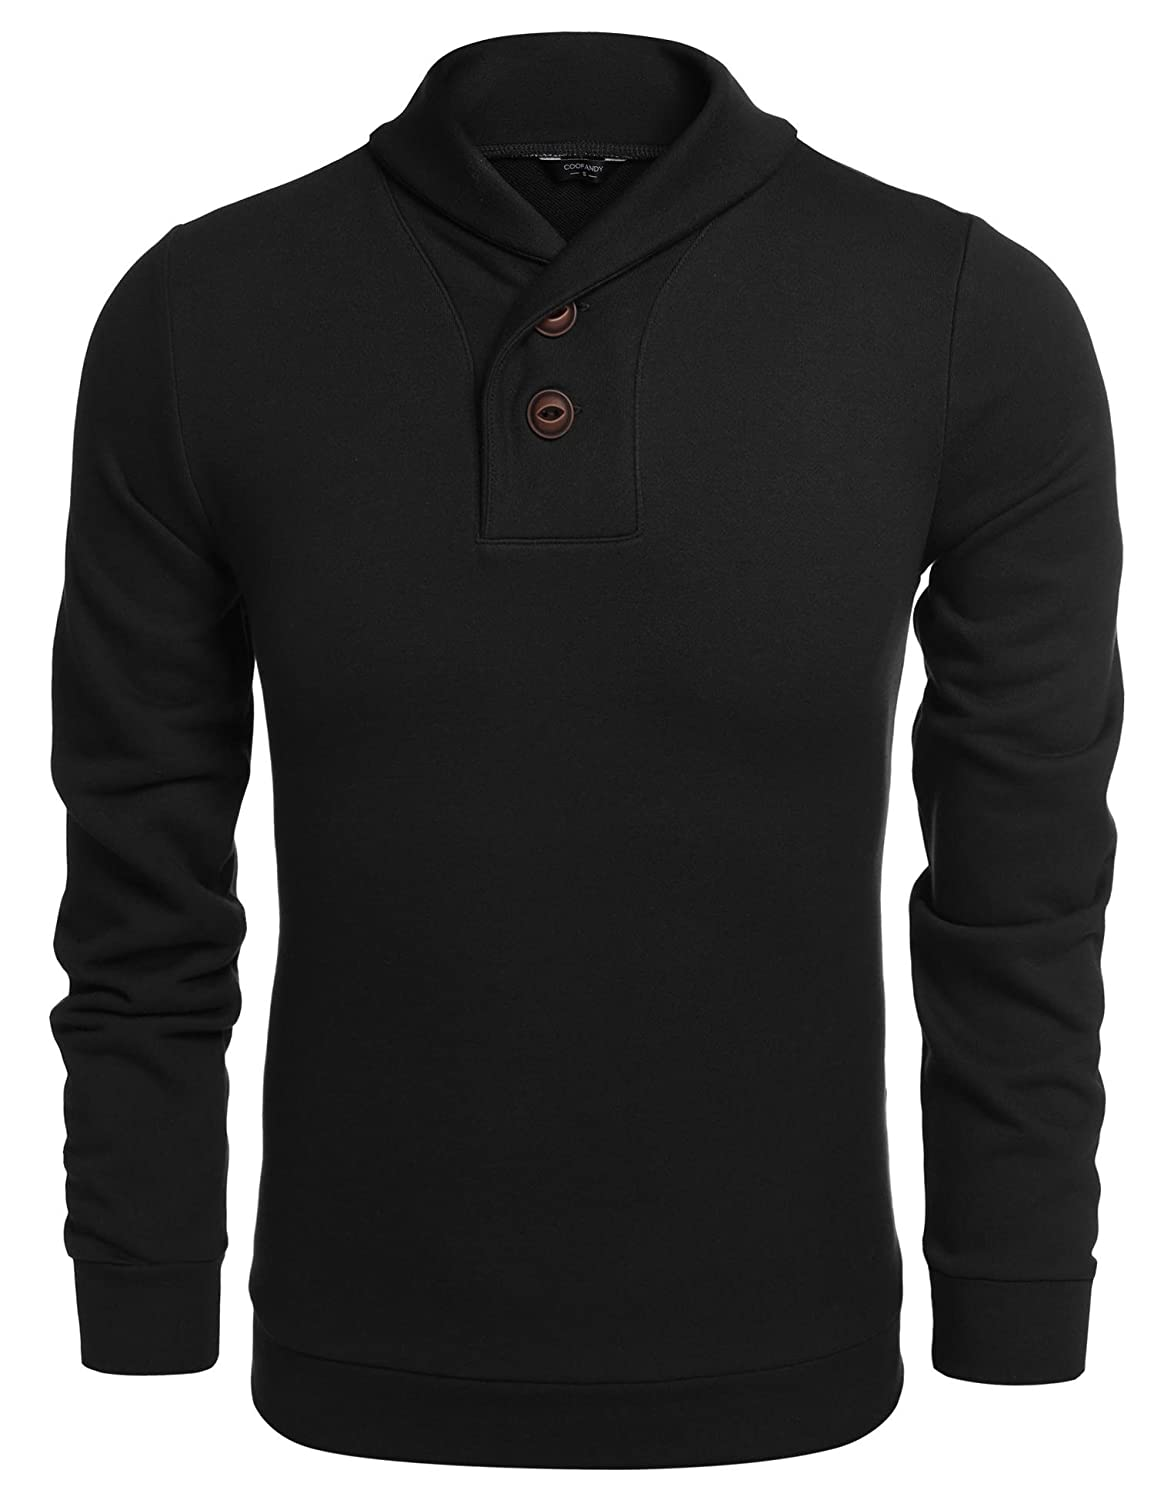 COOFANDY Men's Fashion Knitted Sweater Casual Long Sleeve Pullover AQ-01